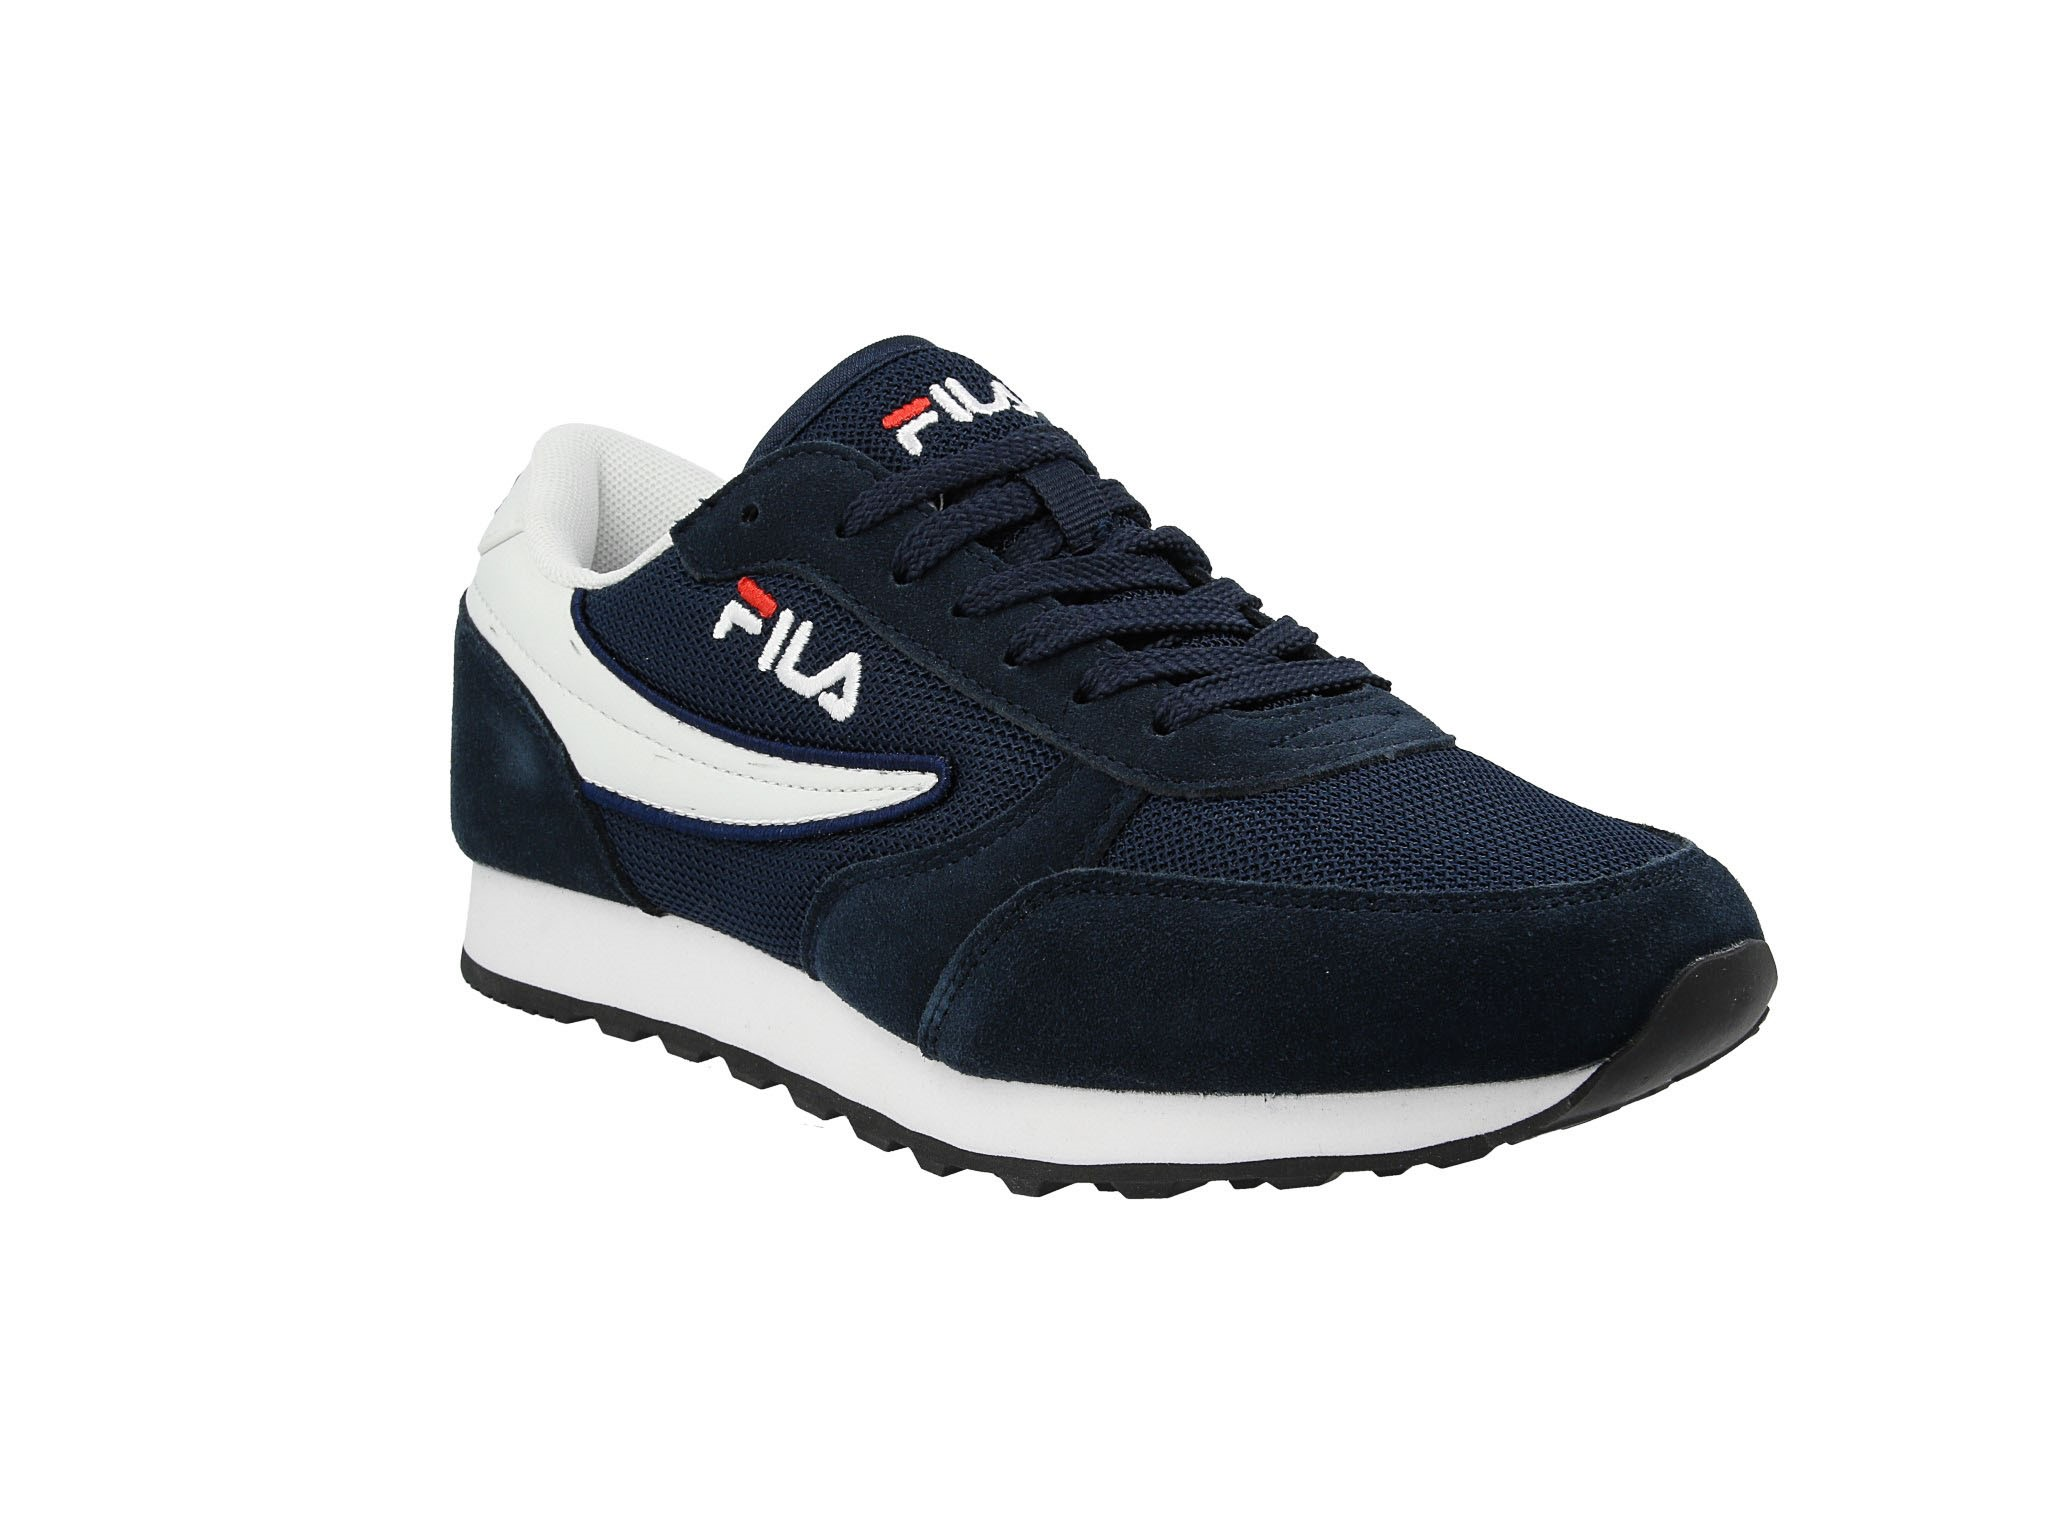 FILA Fila Orbit Jogger Low Sneakersy Męskie 1010589.29Y